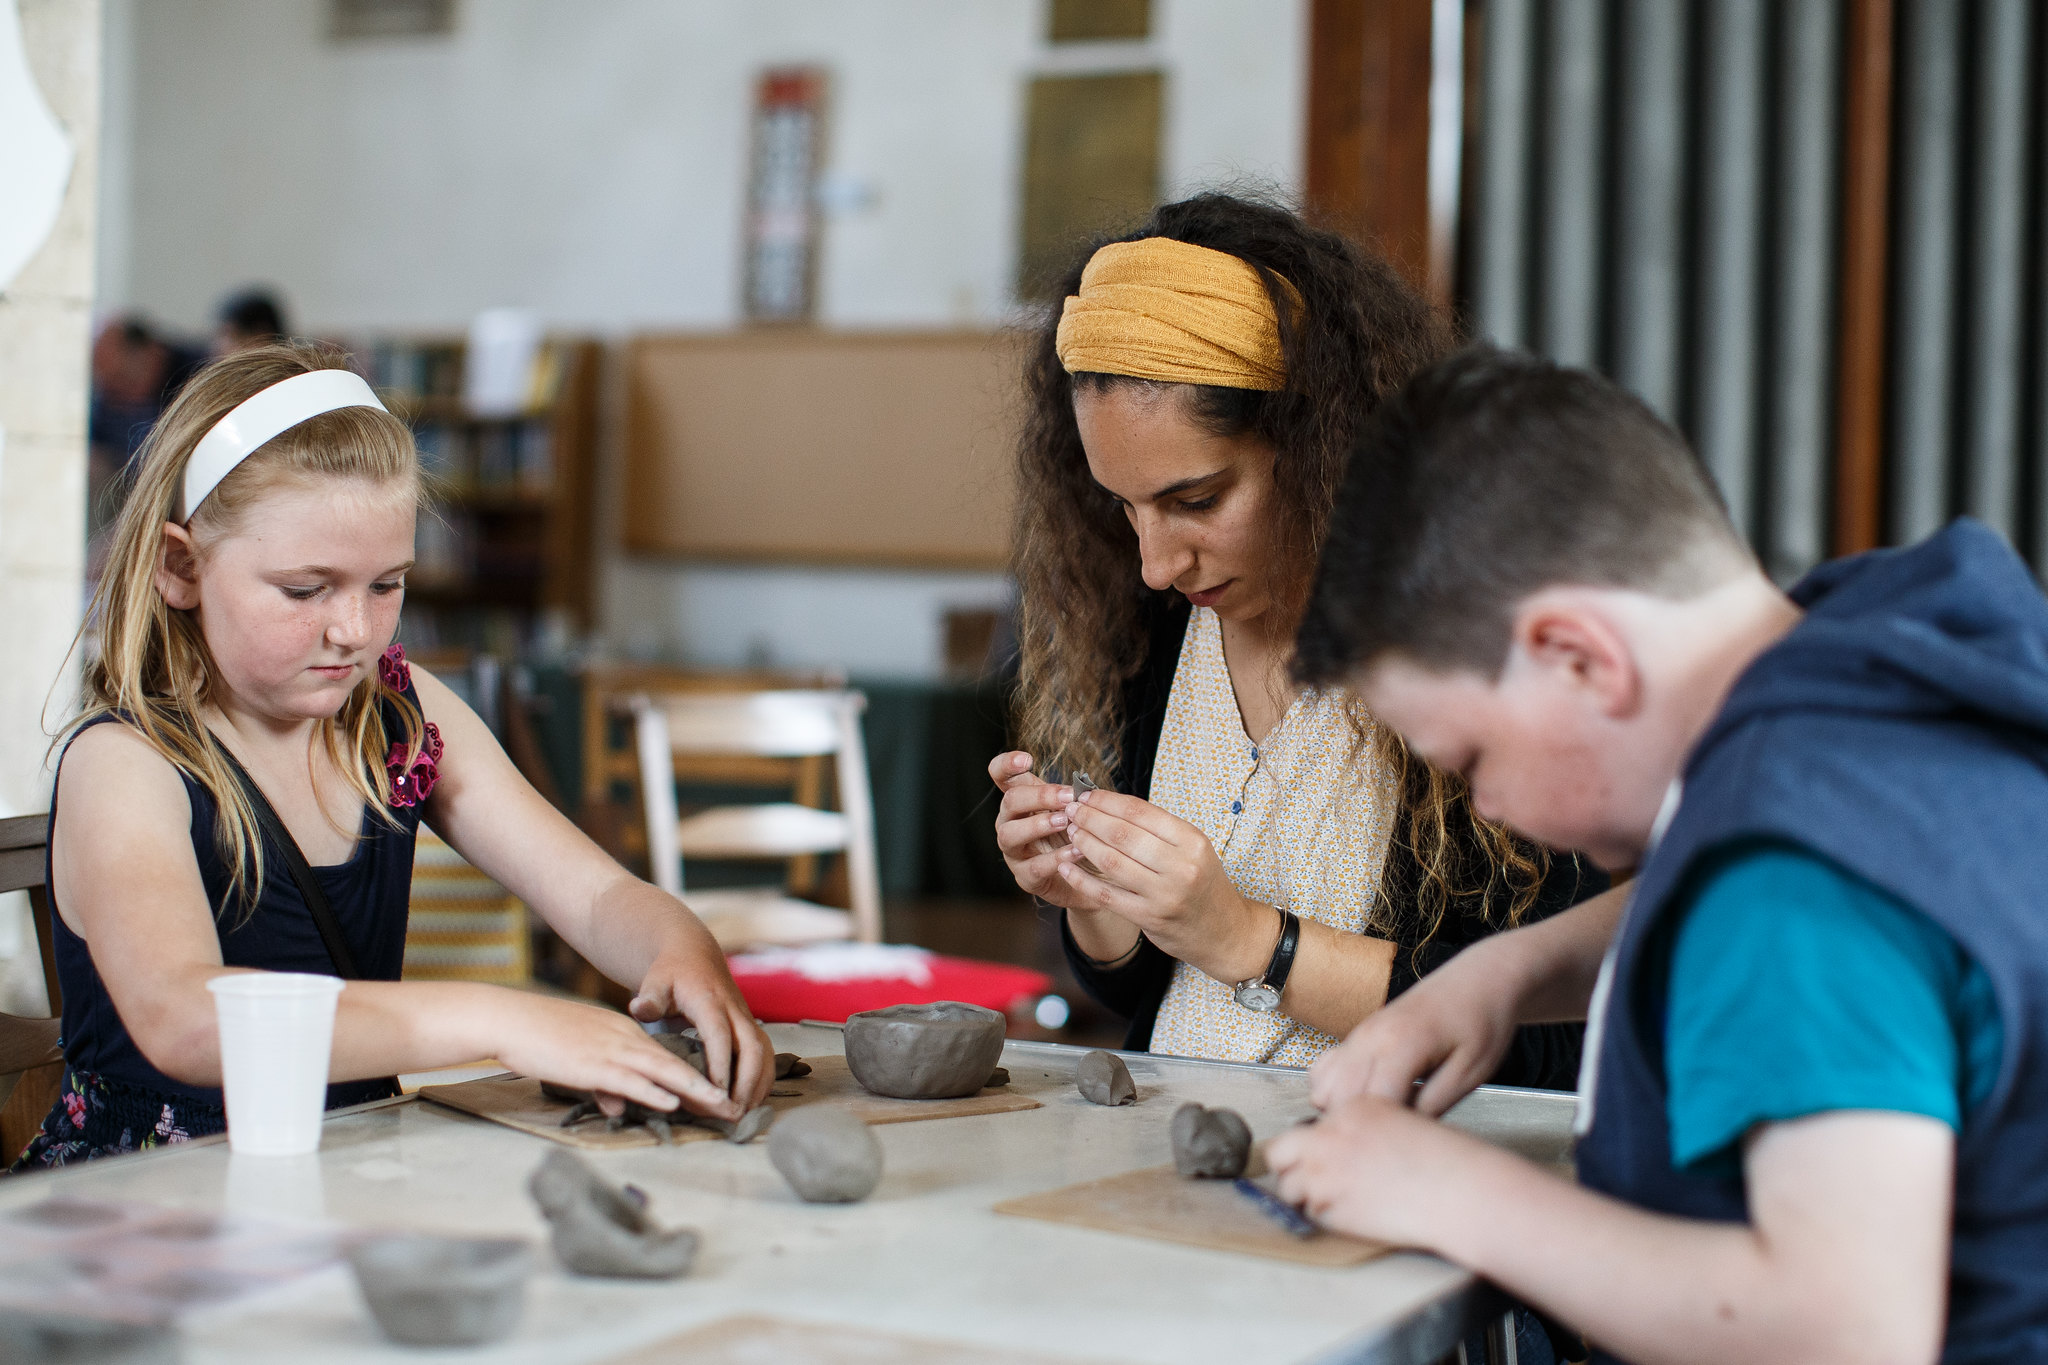 Getting crafty - medieval inch pot making at St Peter's church